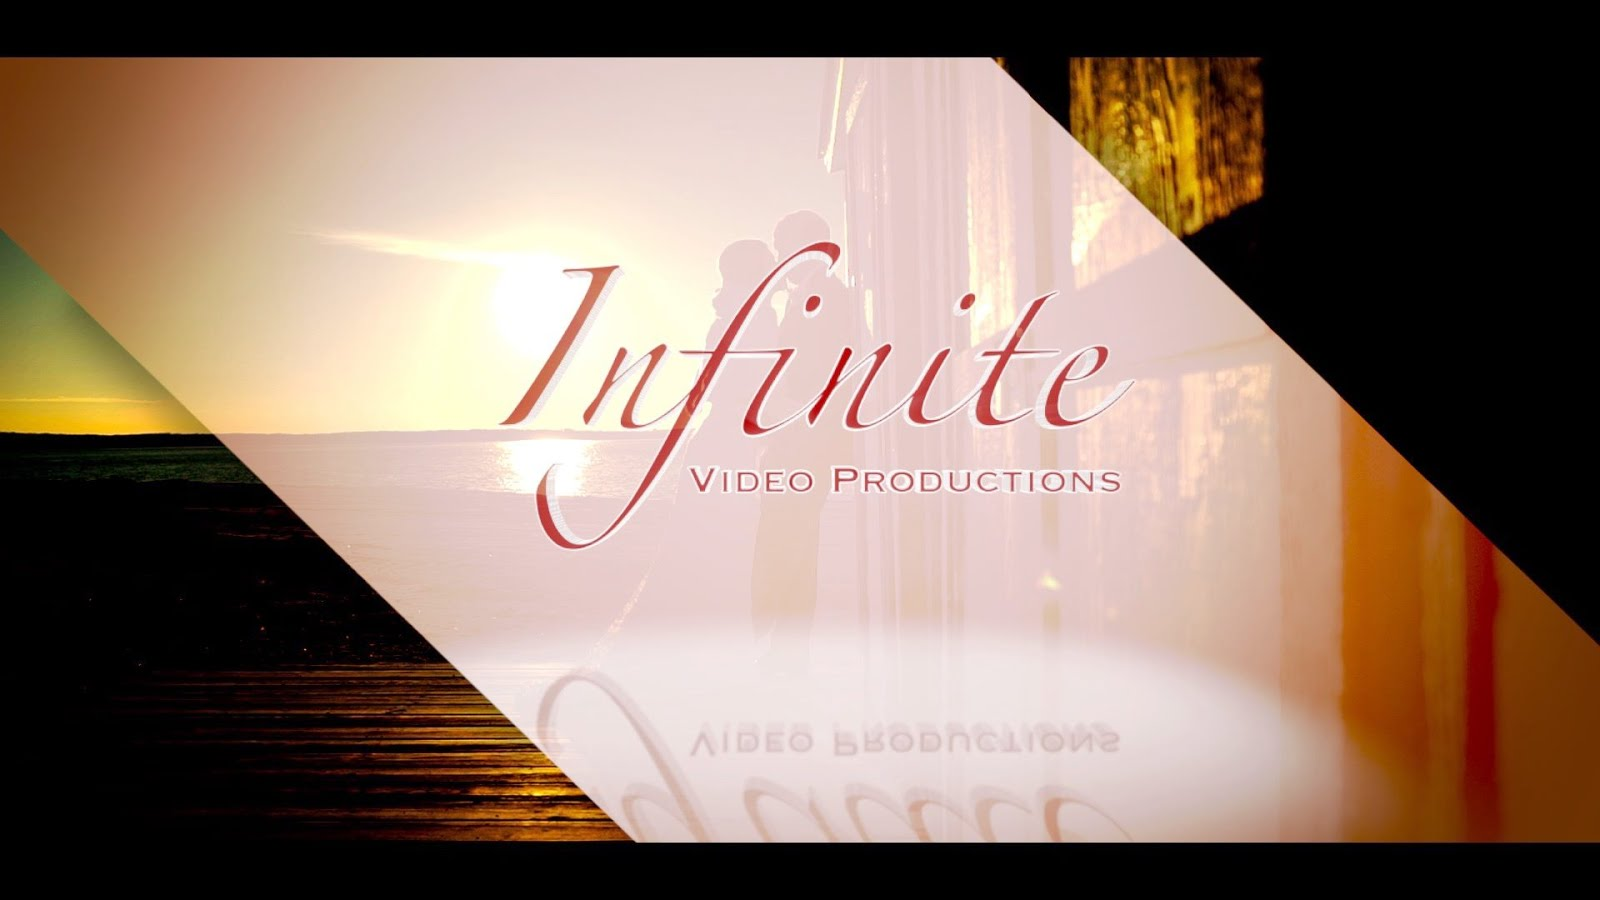 Visit Infinite Video Productions Website